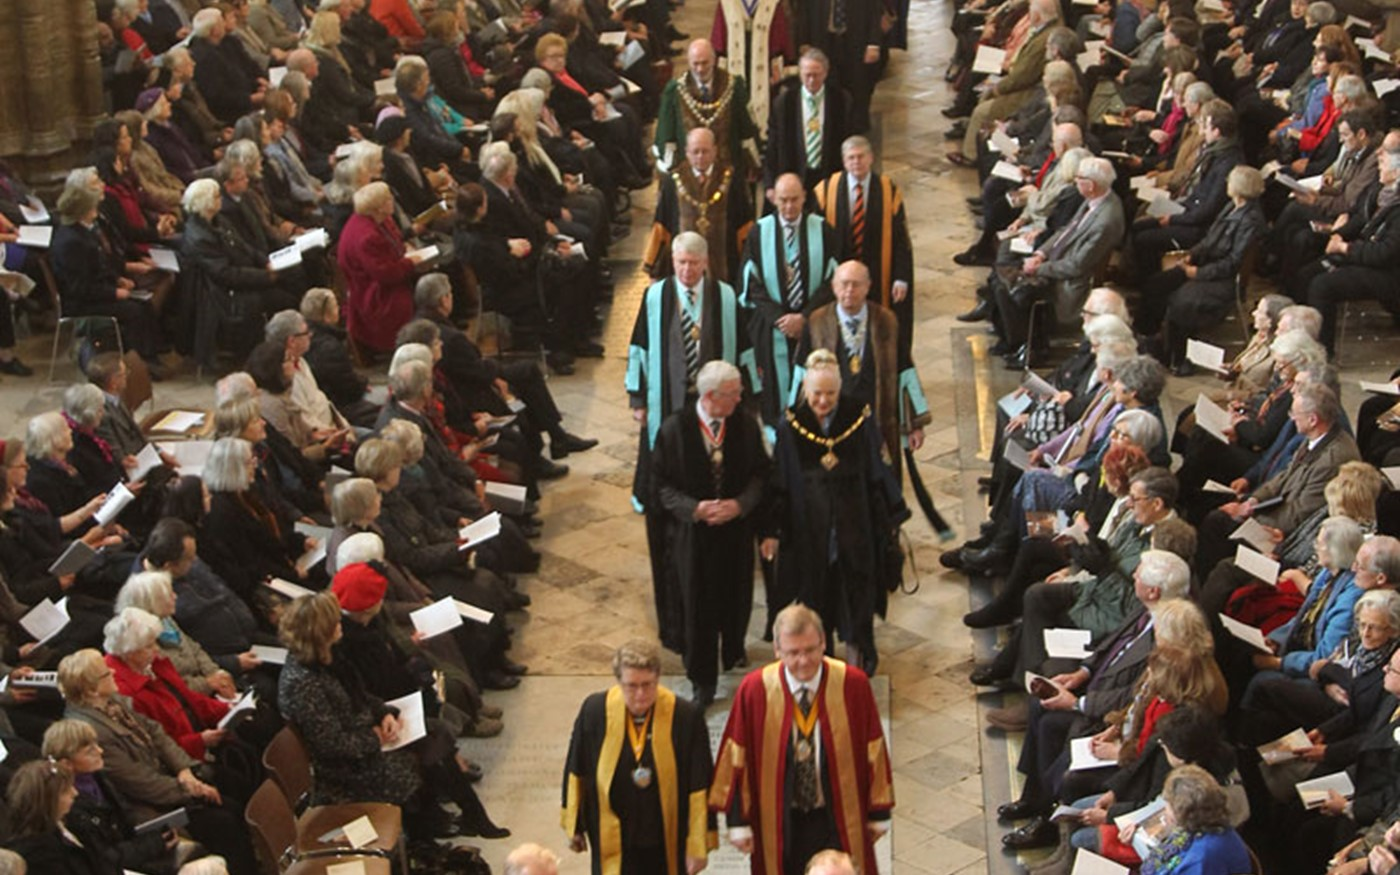 A robed procession by members of the City Livery Companies